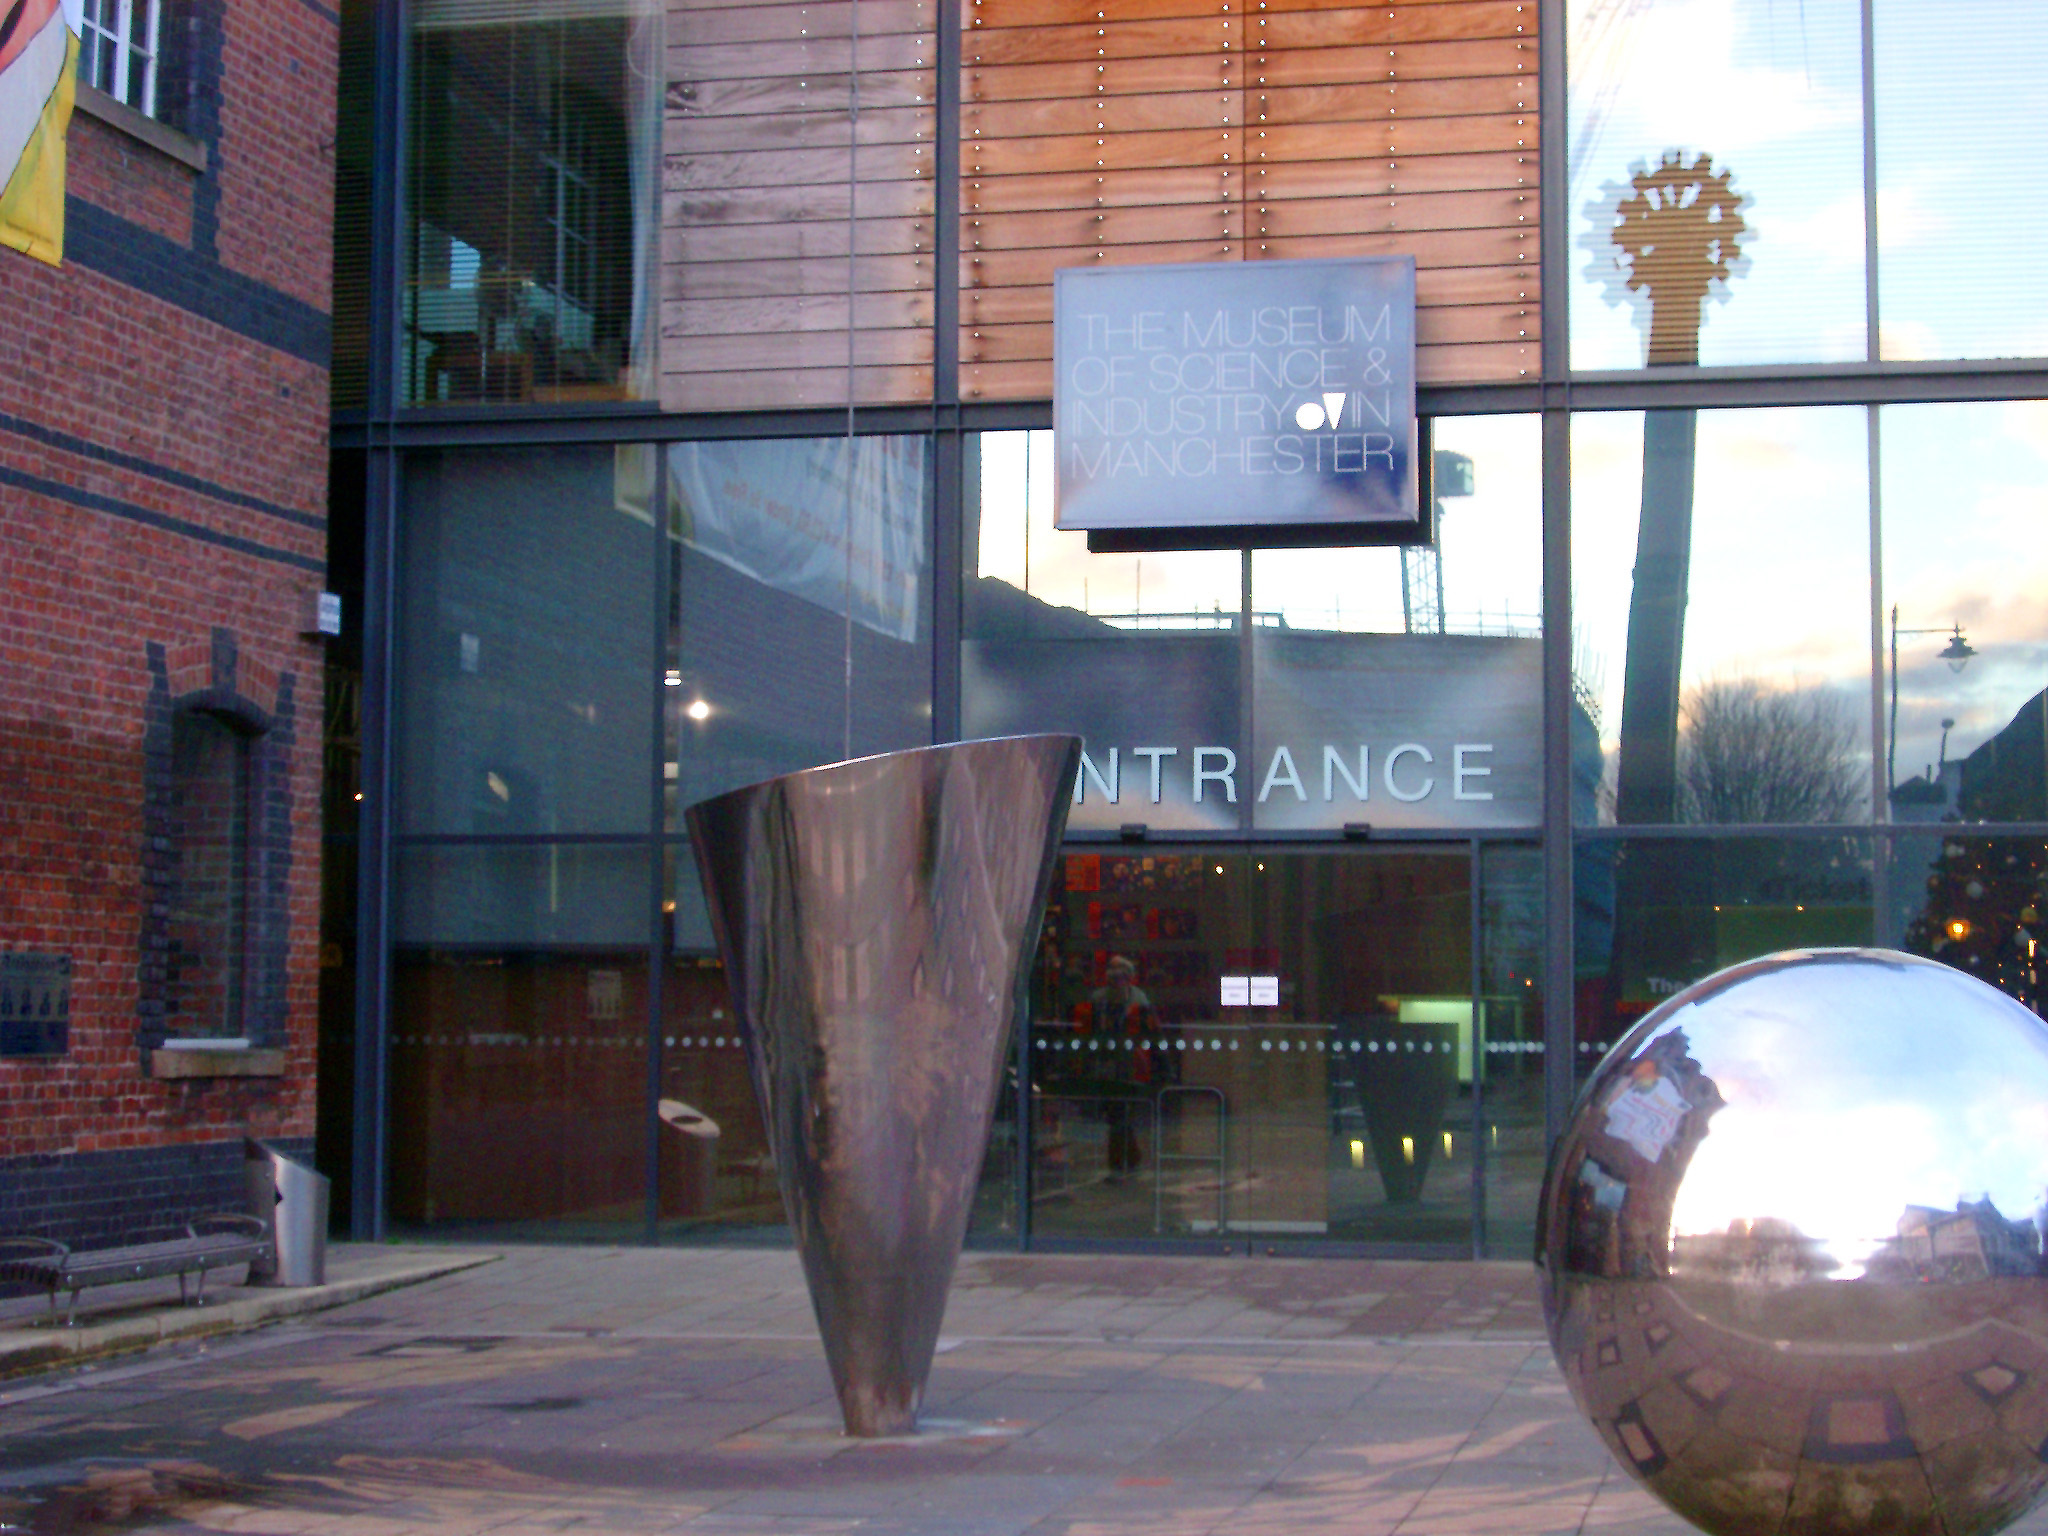 Entrance to the Manchester Museum for science and industry with on outdoor sculpture of a shiny metal silver sphere